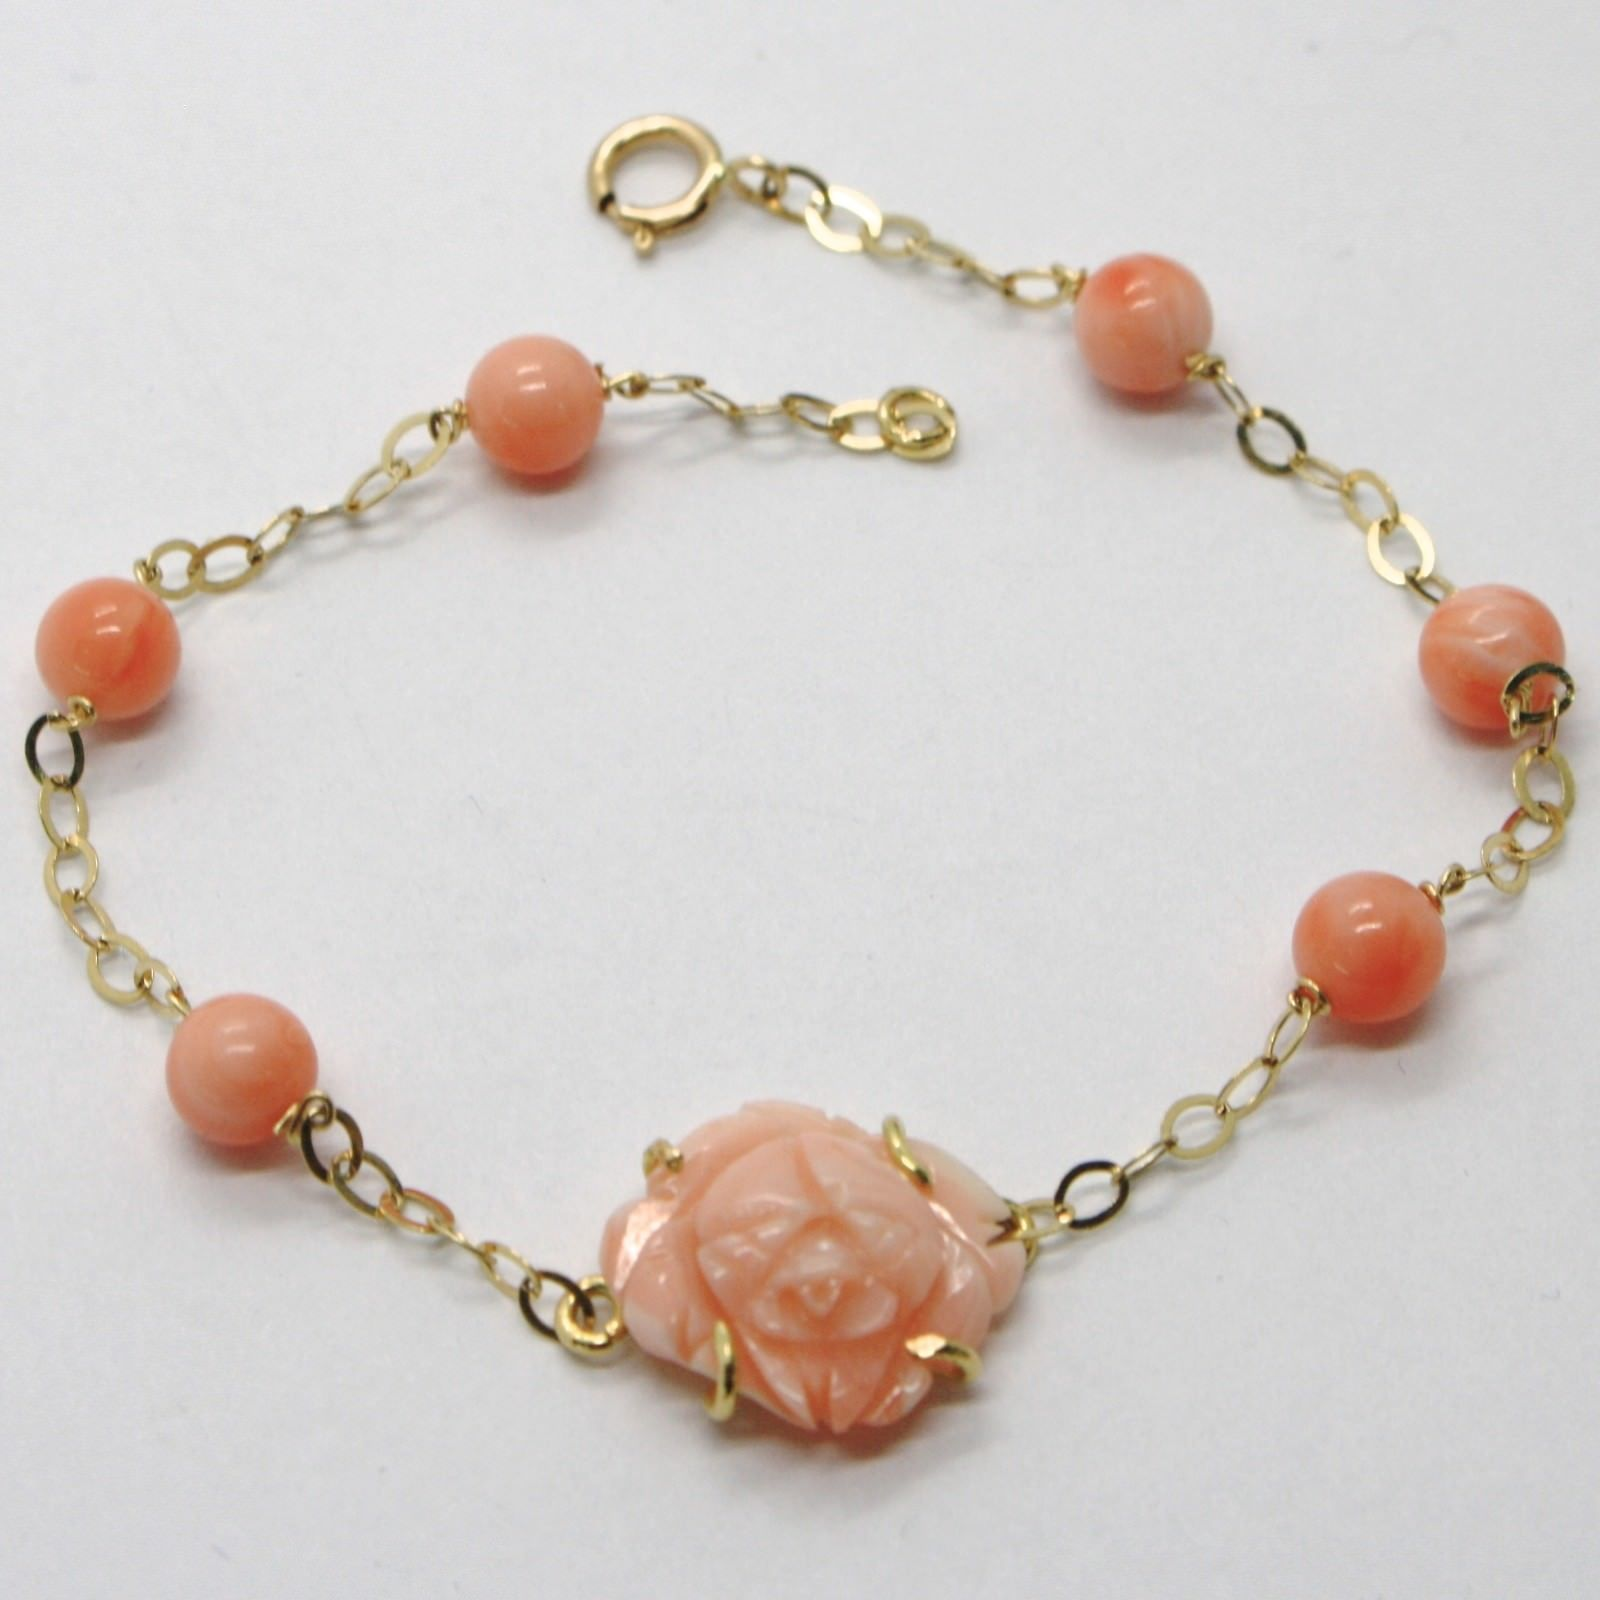 BRACELET EN OR JAUNE 18K 750 CORAIL ROSE NATUREL EN FORME DE FLEUR MADE IN ITALY